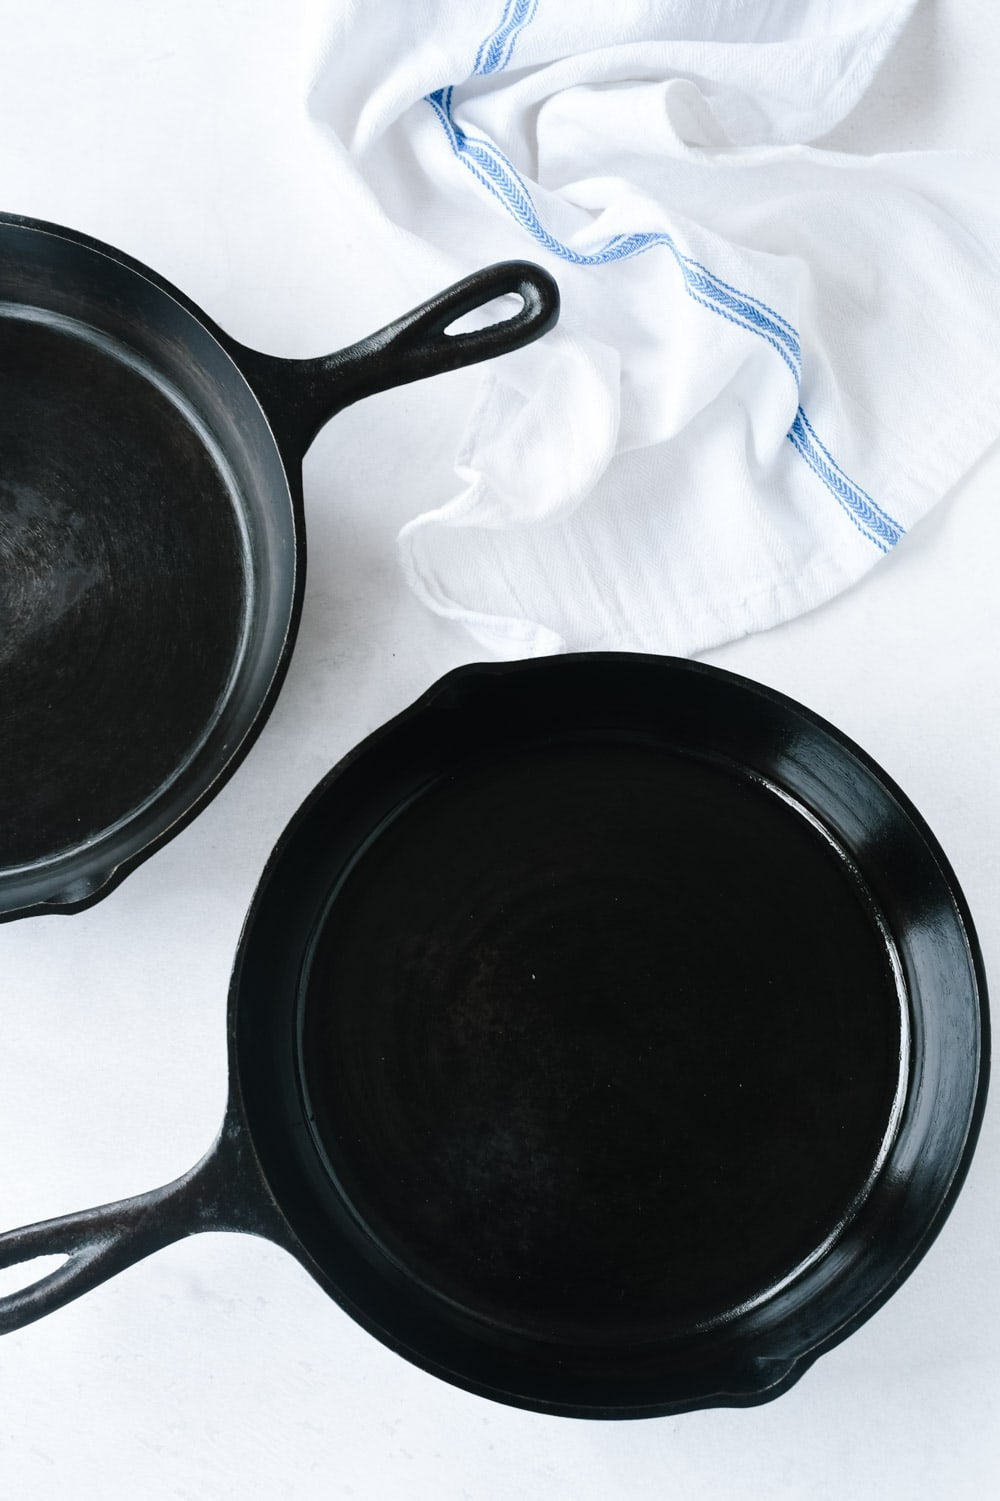 Two cast iron skillets